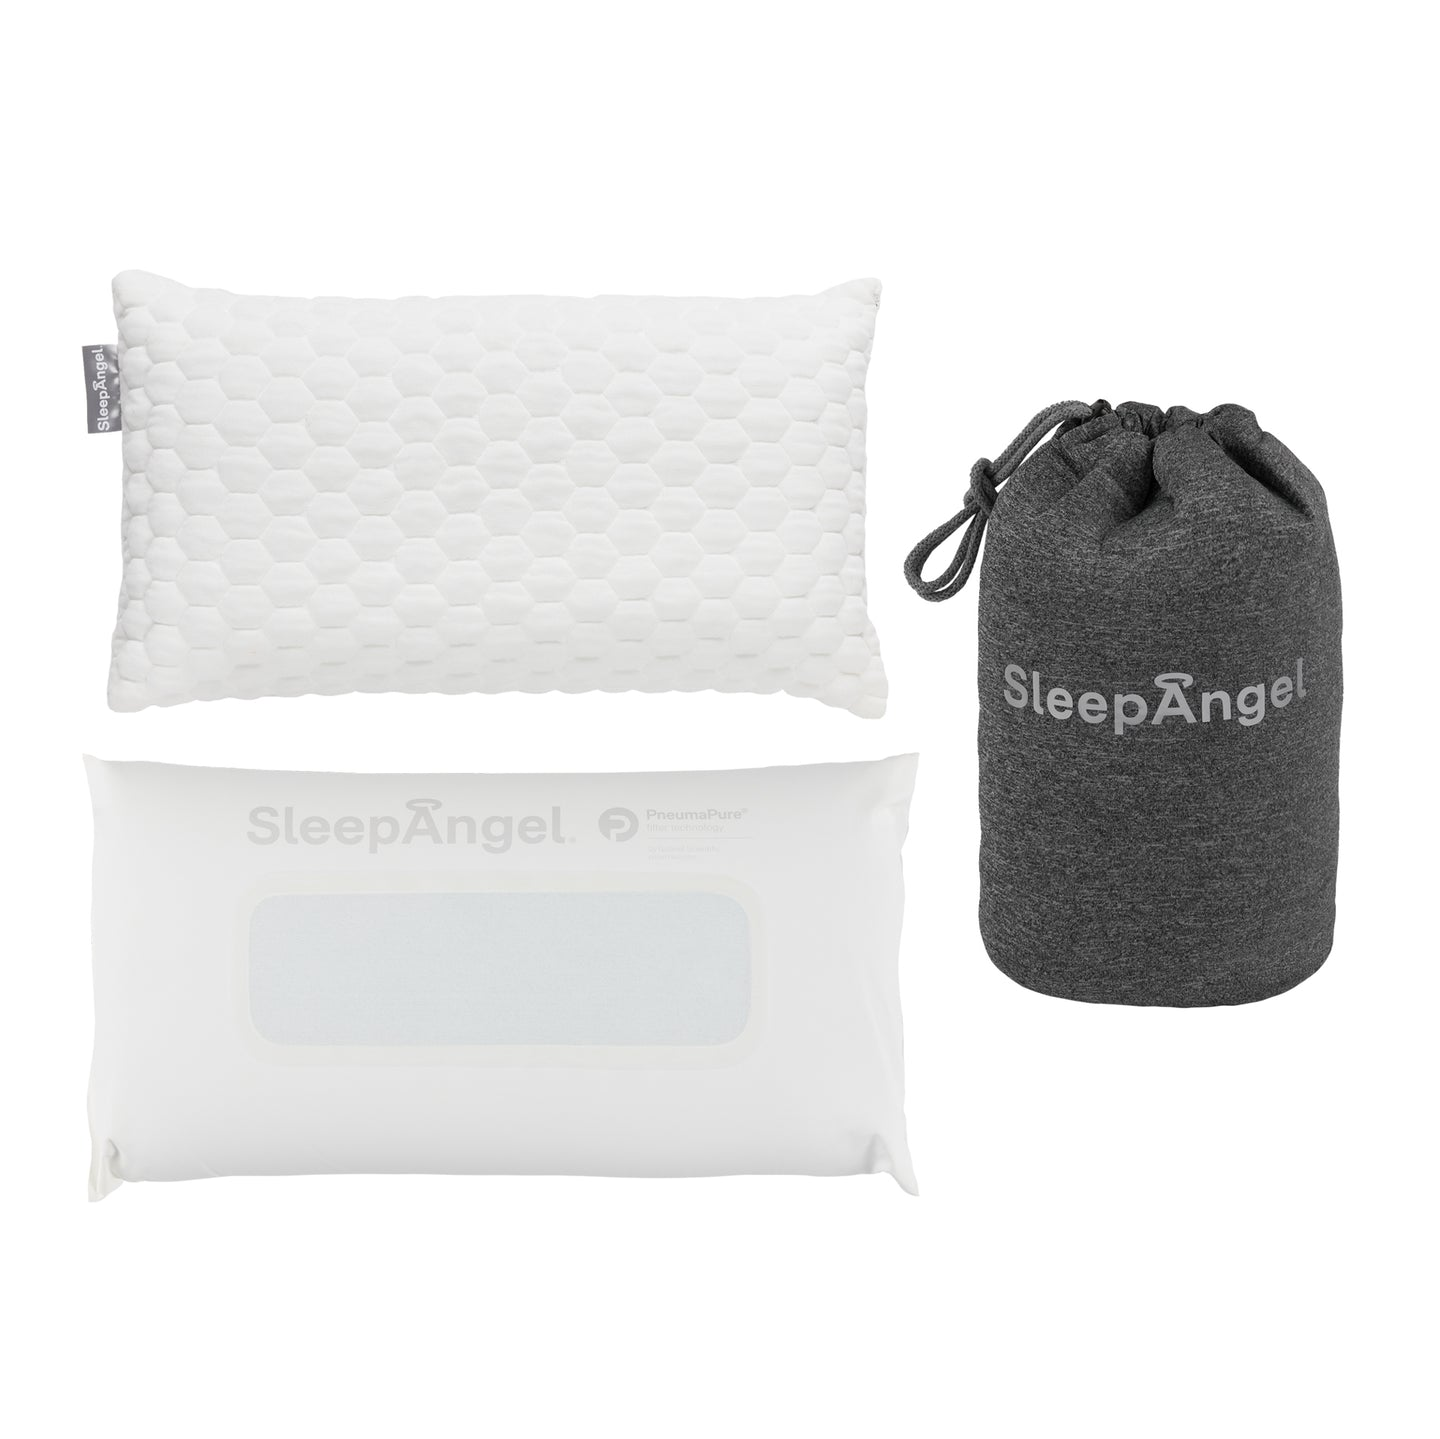 SleepAngel Travel Pillows - Thistle Sleep Solutions